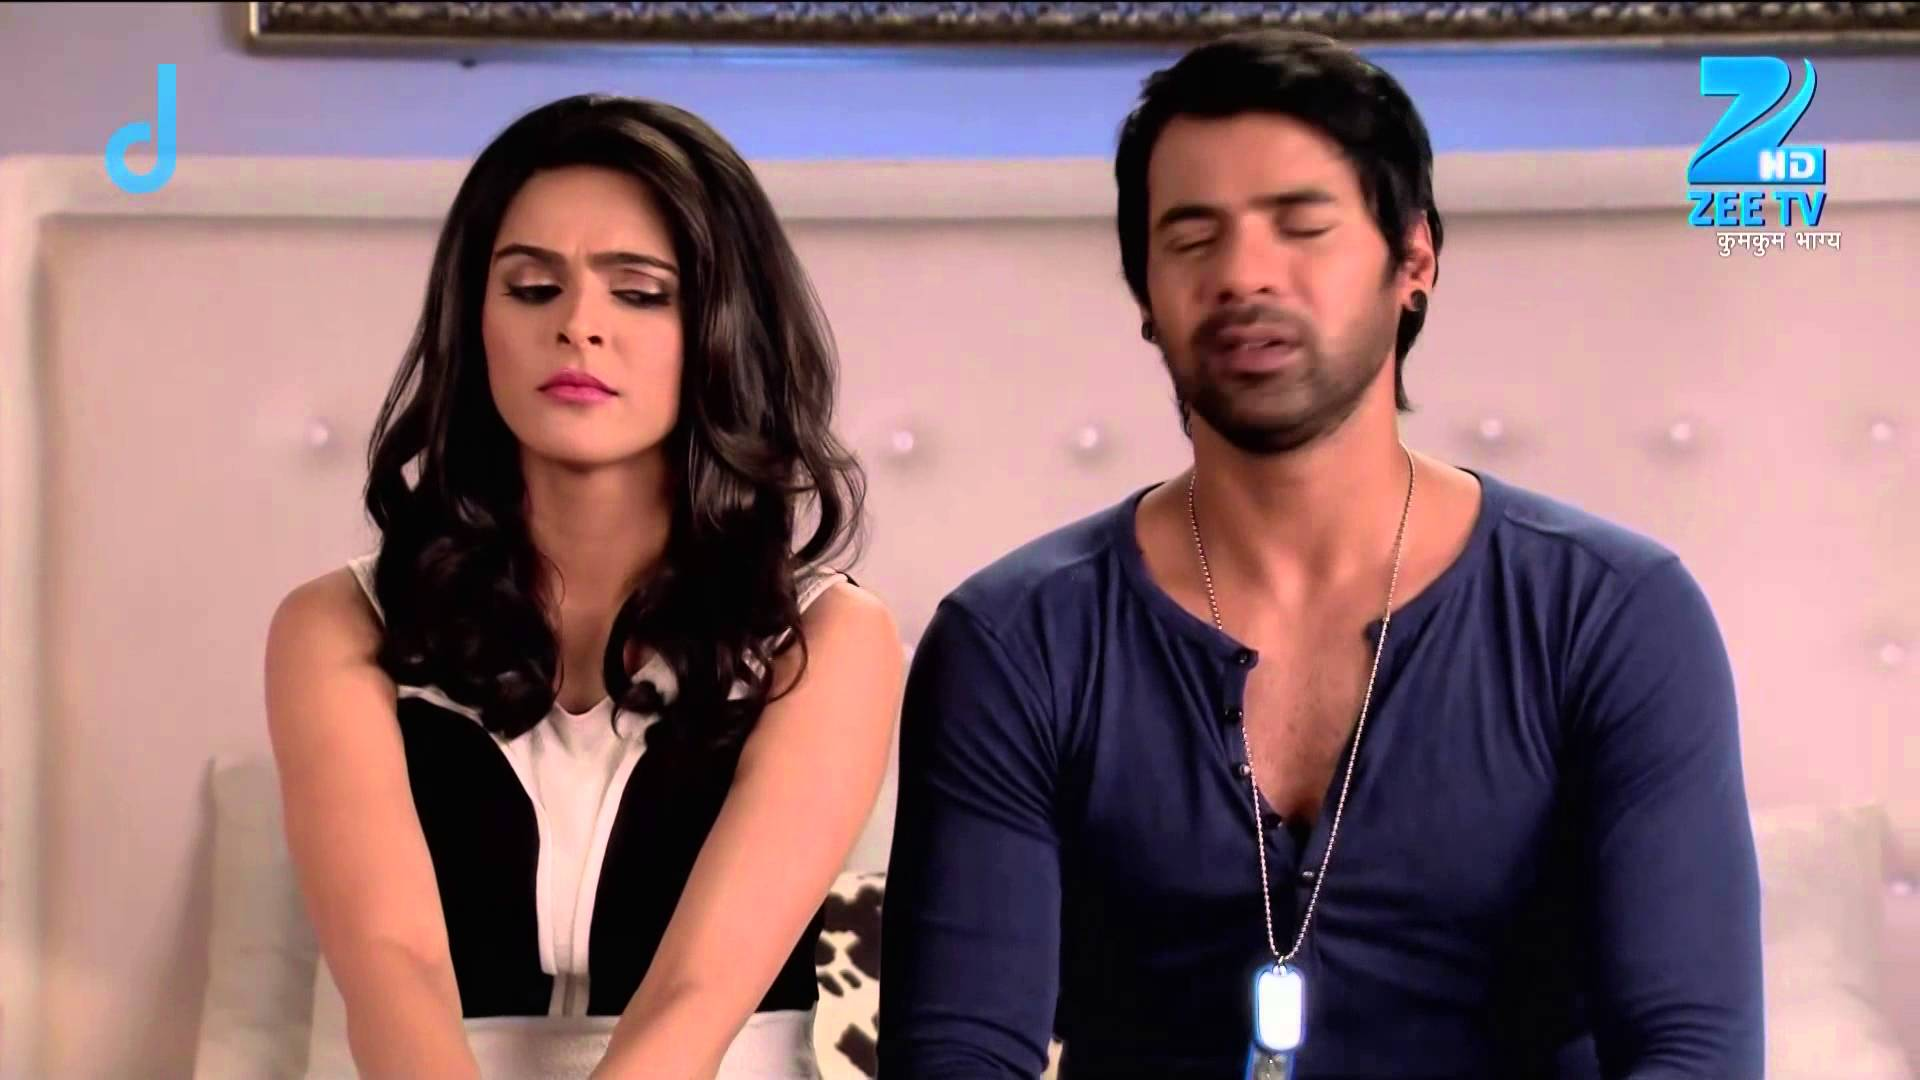 Tanu Supports Abhi! Kumkum Bhagya 17th November 2015 Episode Latest News